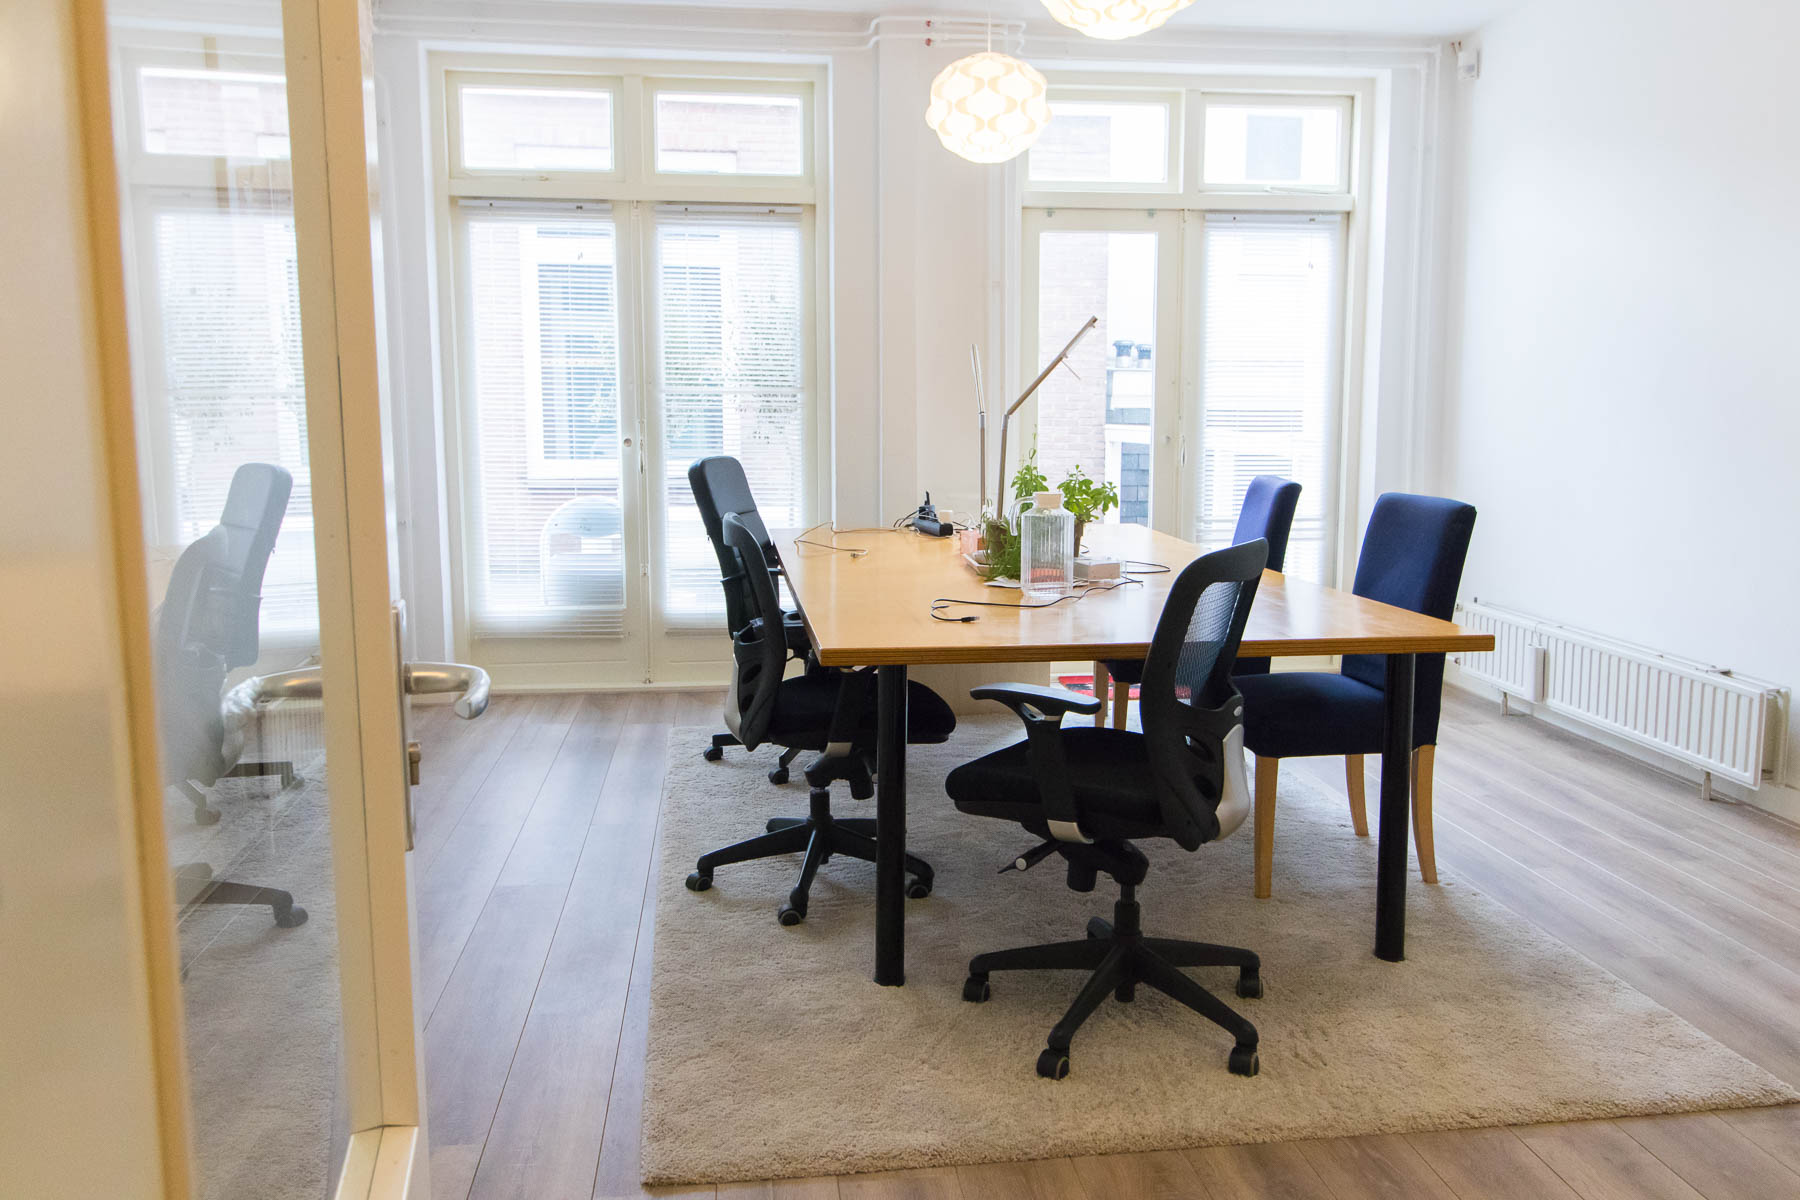 Natural light fall in most office spaces